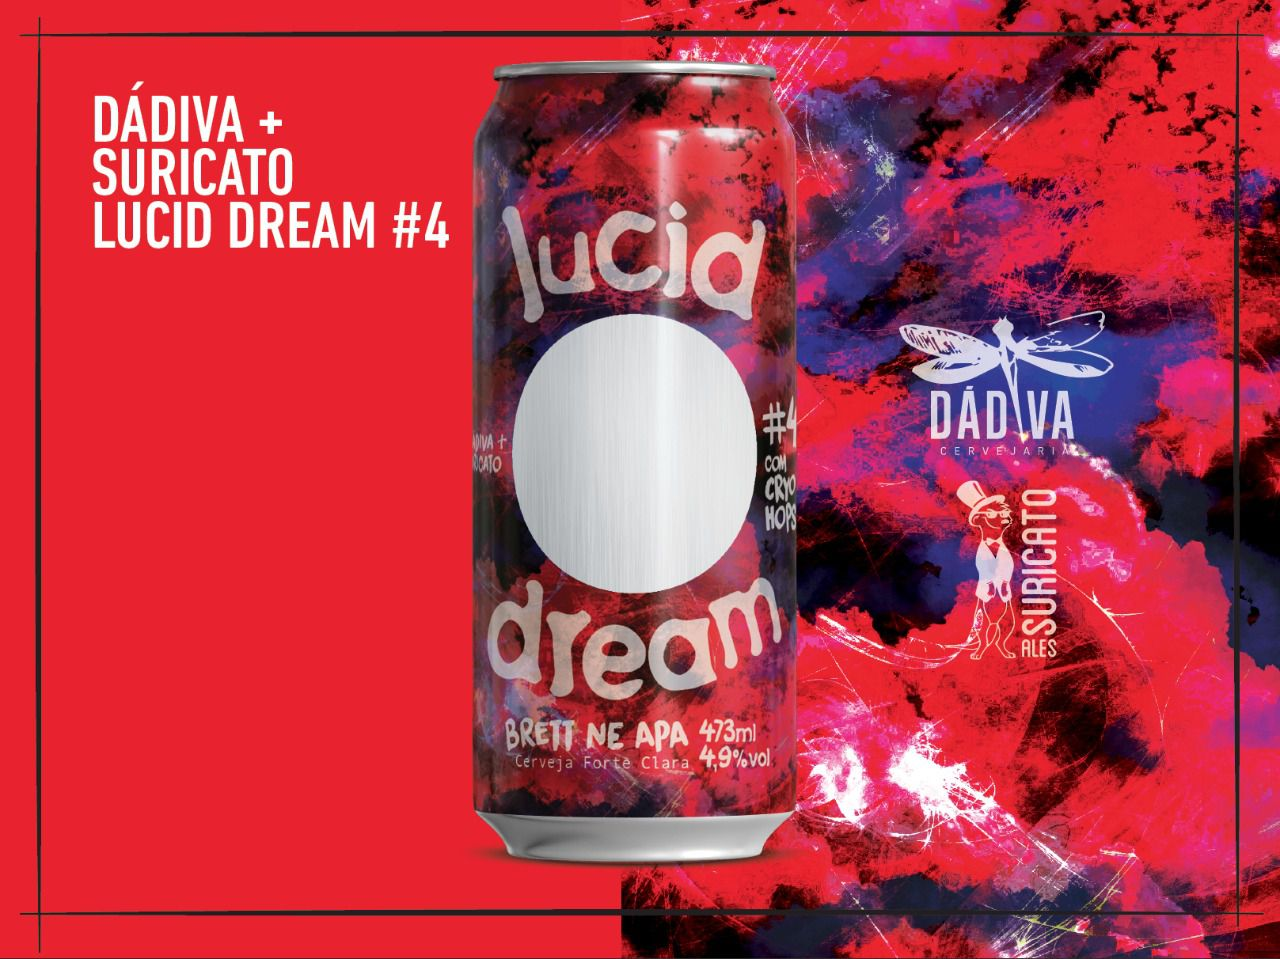 Dádiva / Suricato Lucid Dream # 4 Lata 473ml NE APA